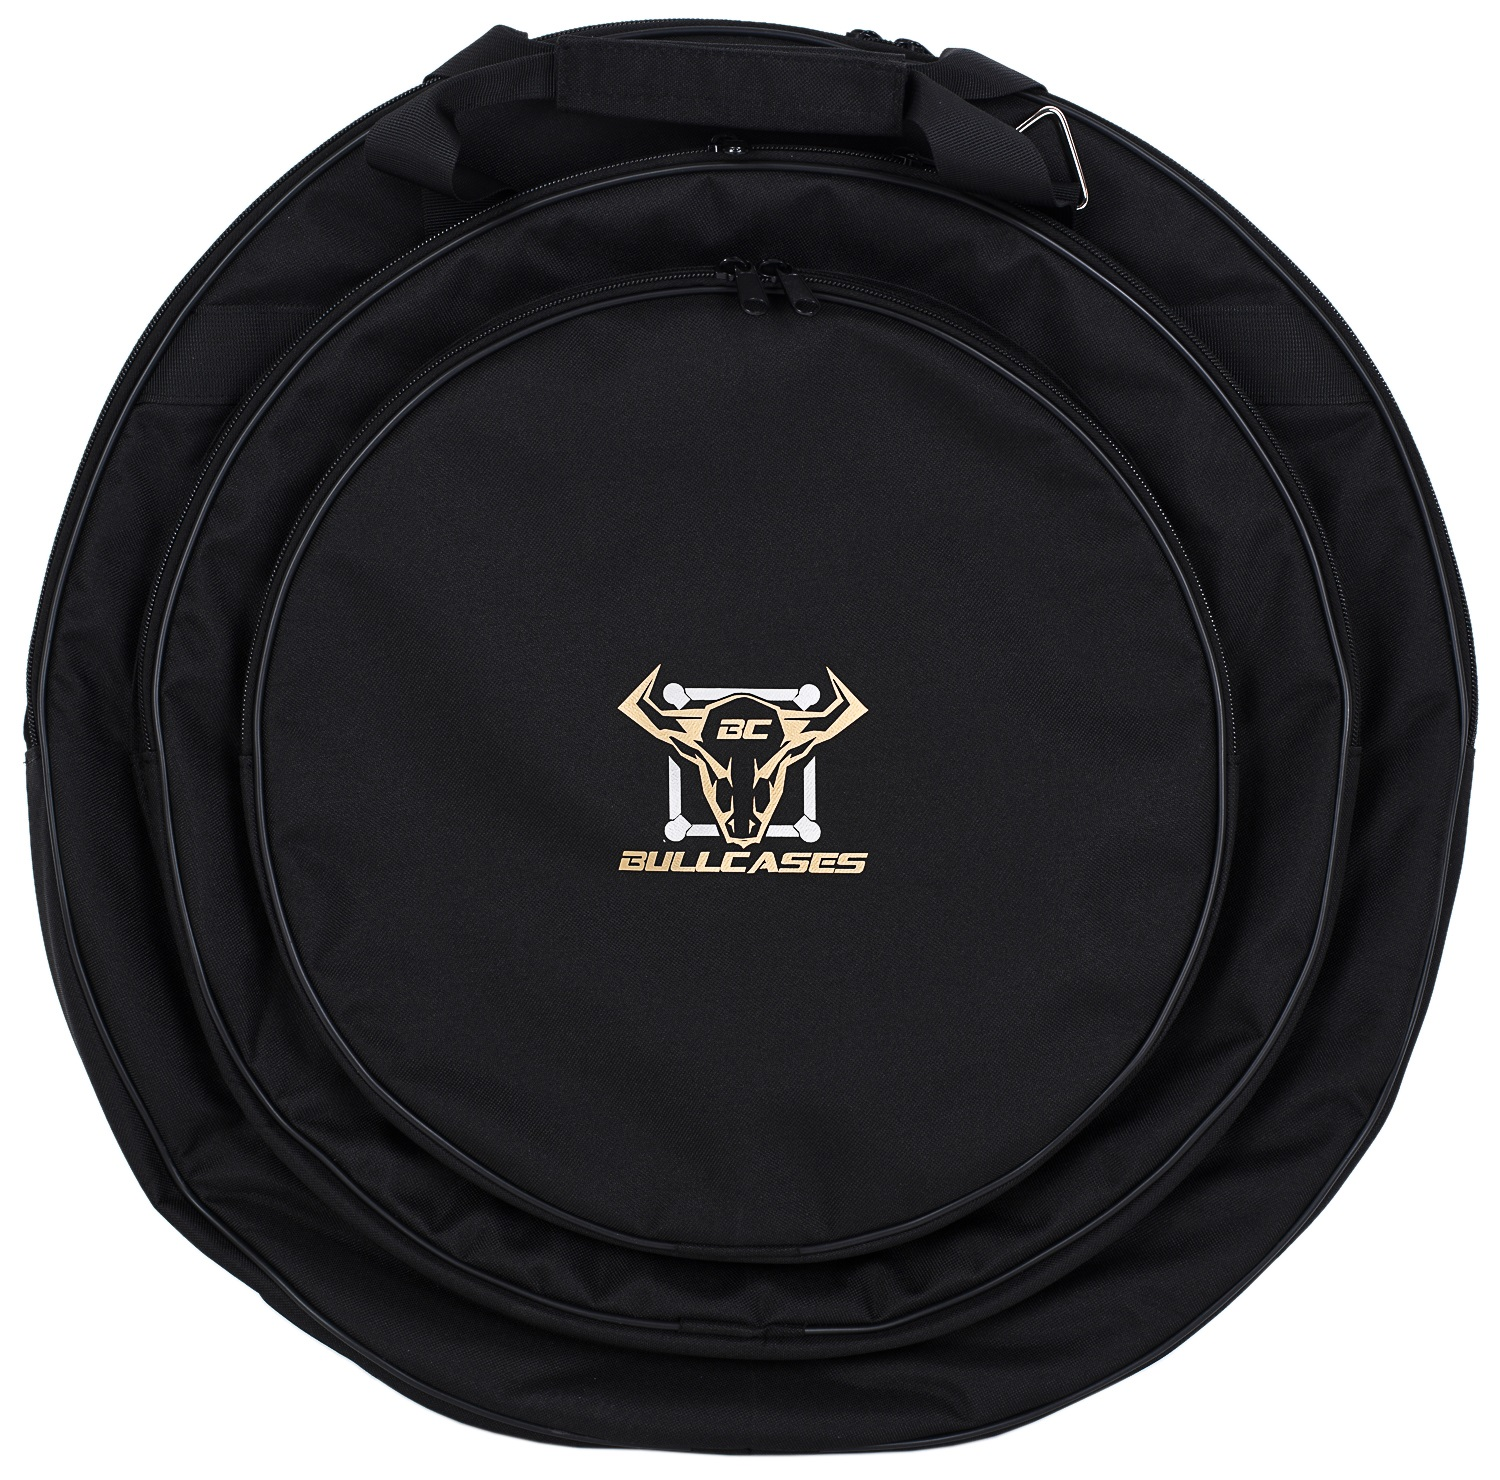 "Bull Cases 22"" Cymbal Bag"